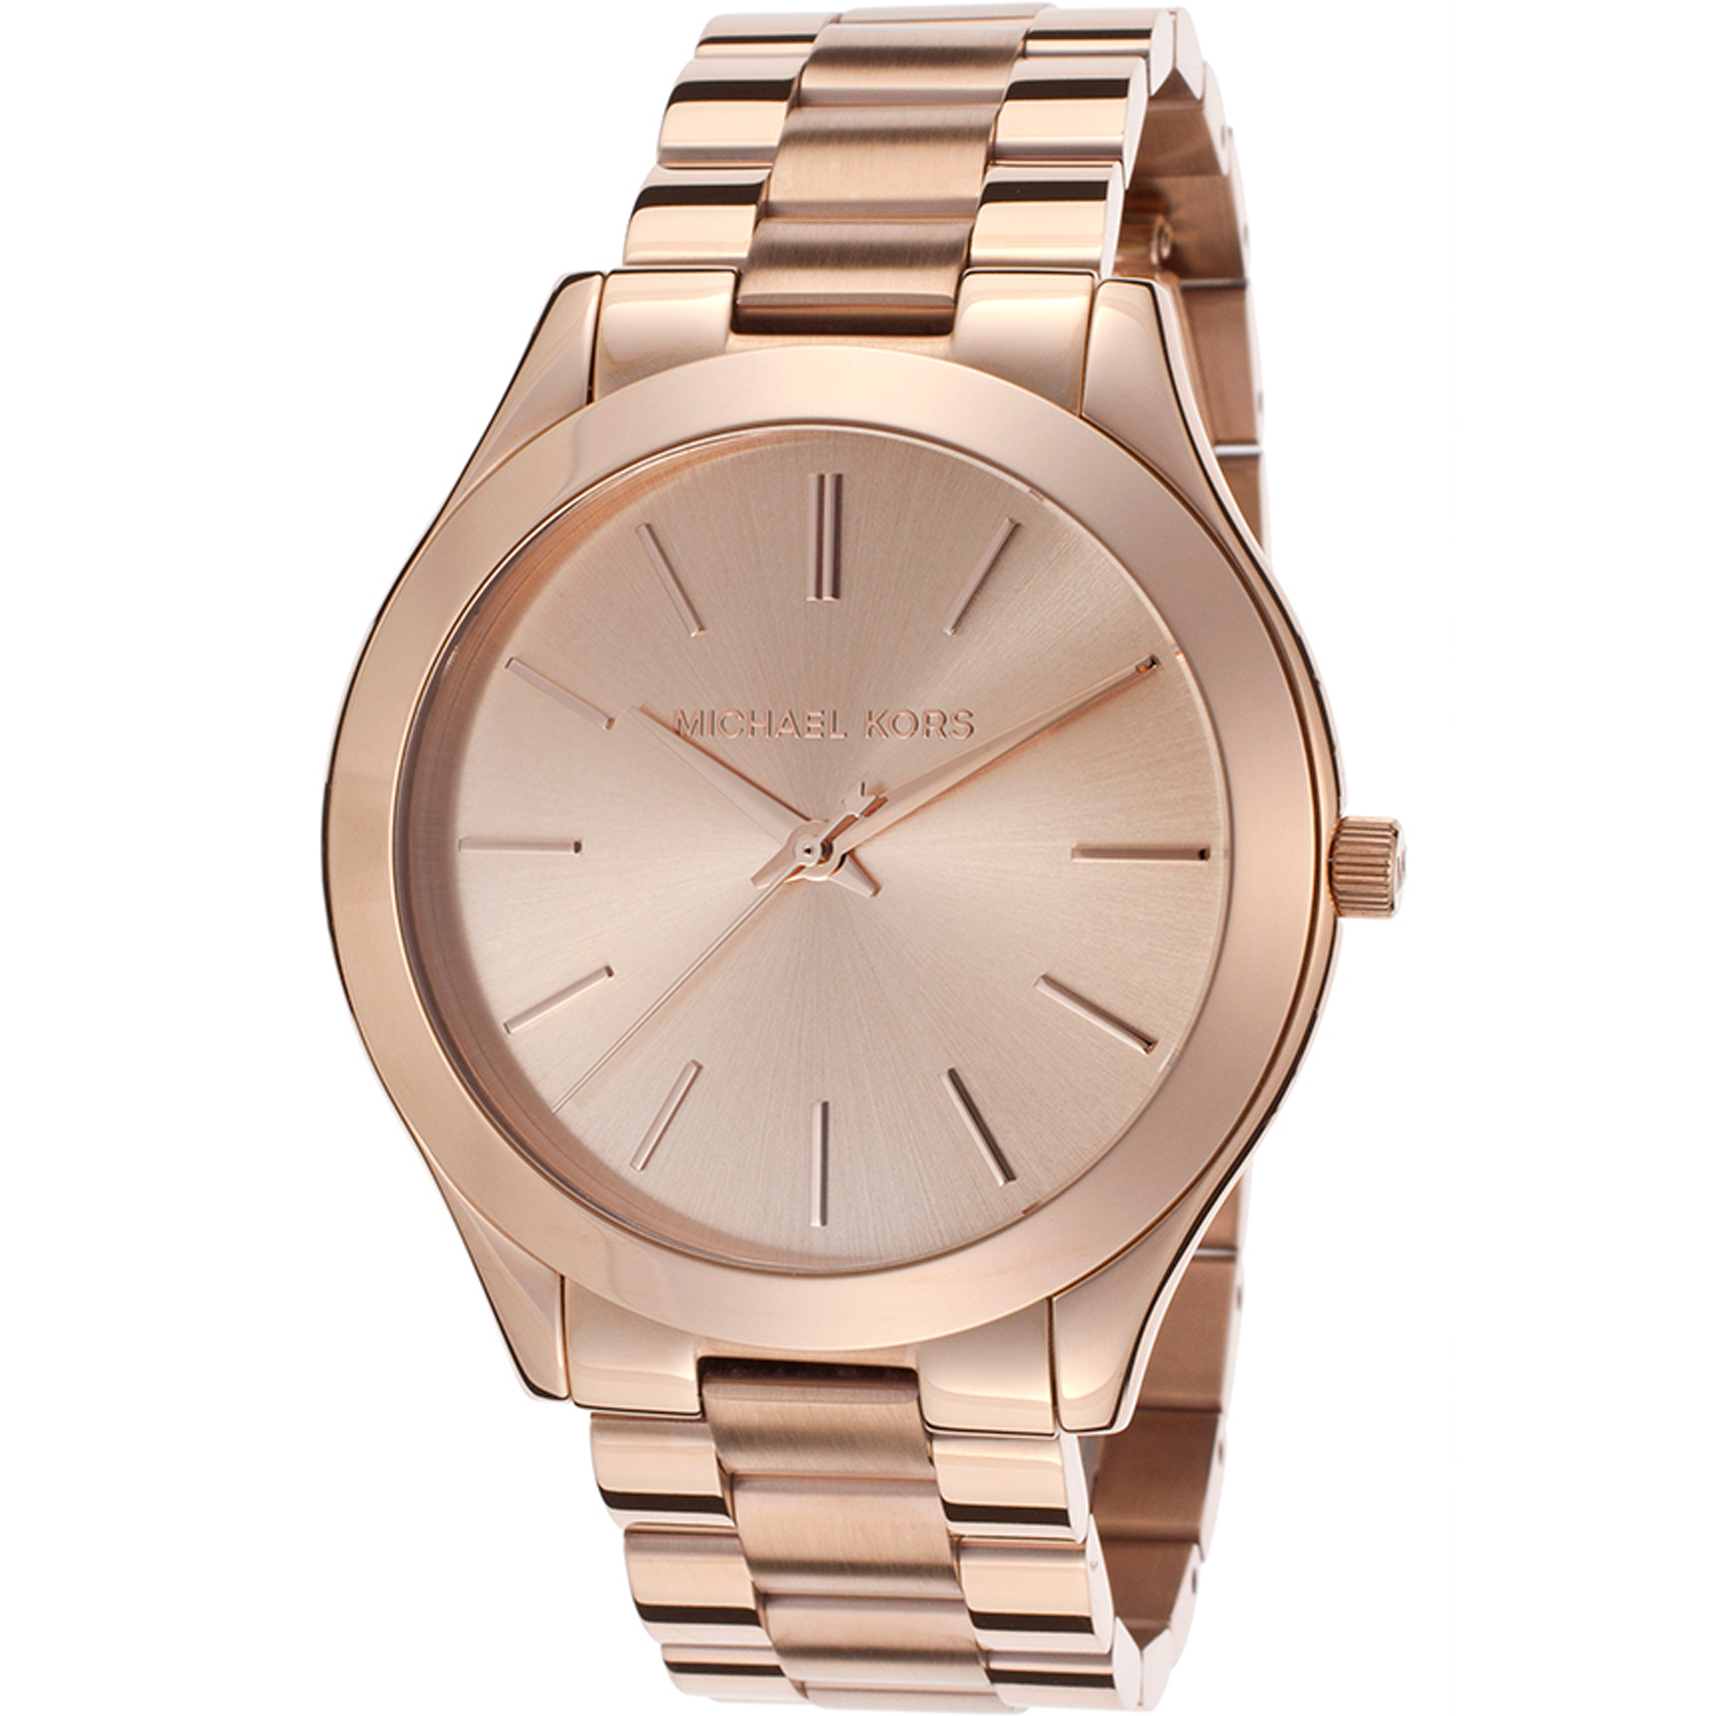 Michael kors stainless steel rose tone watch kors01606 for Watches clearance